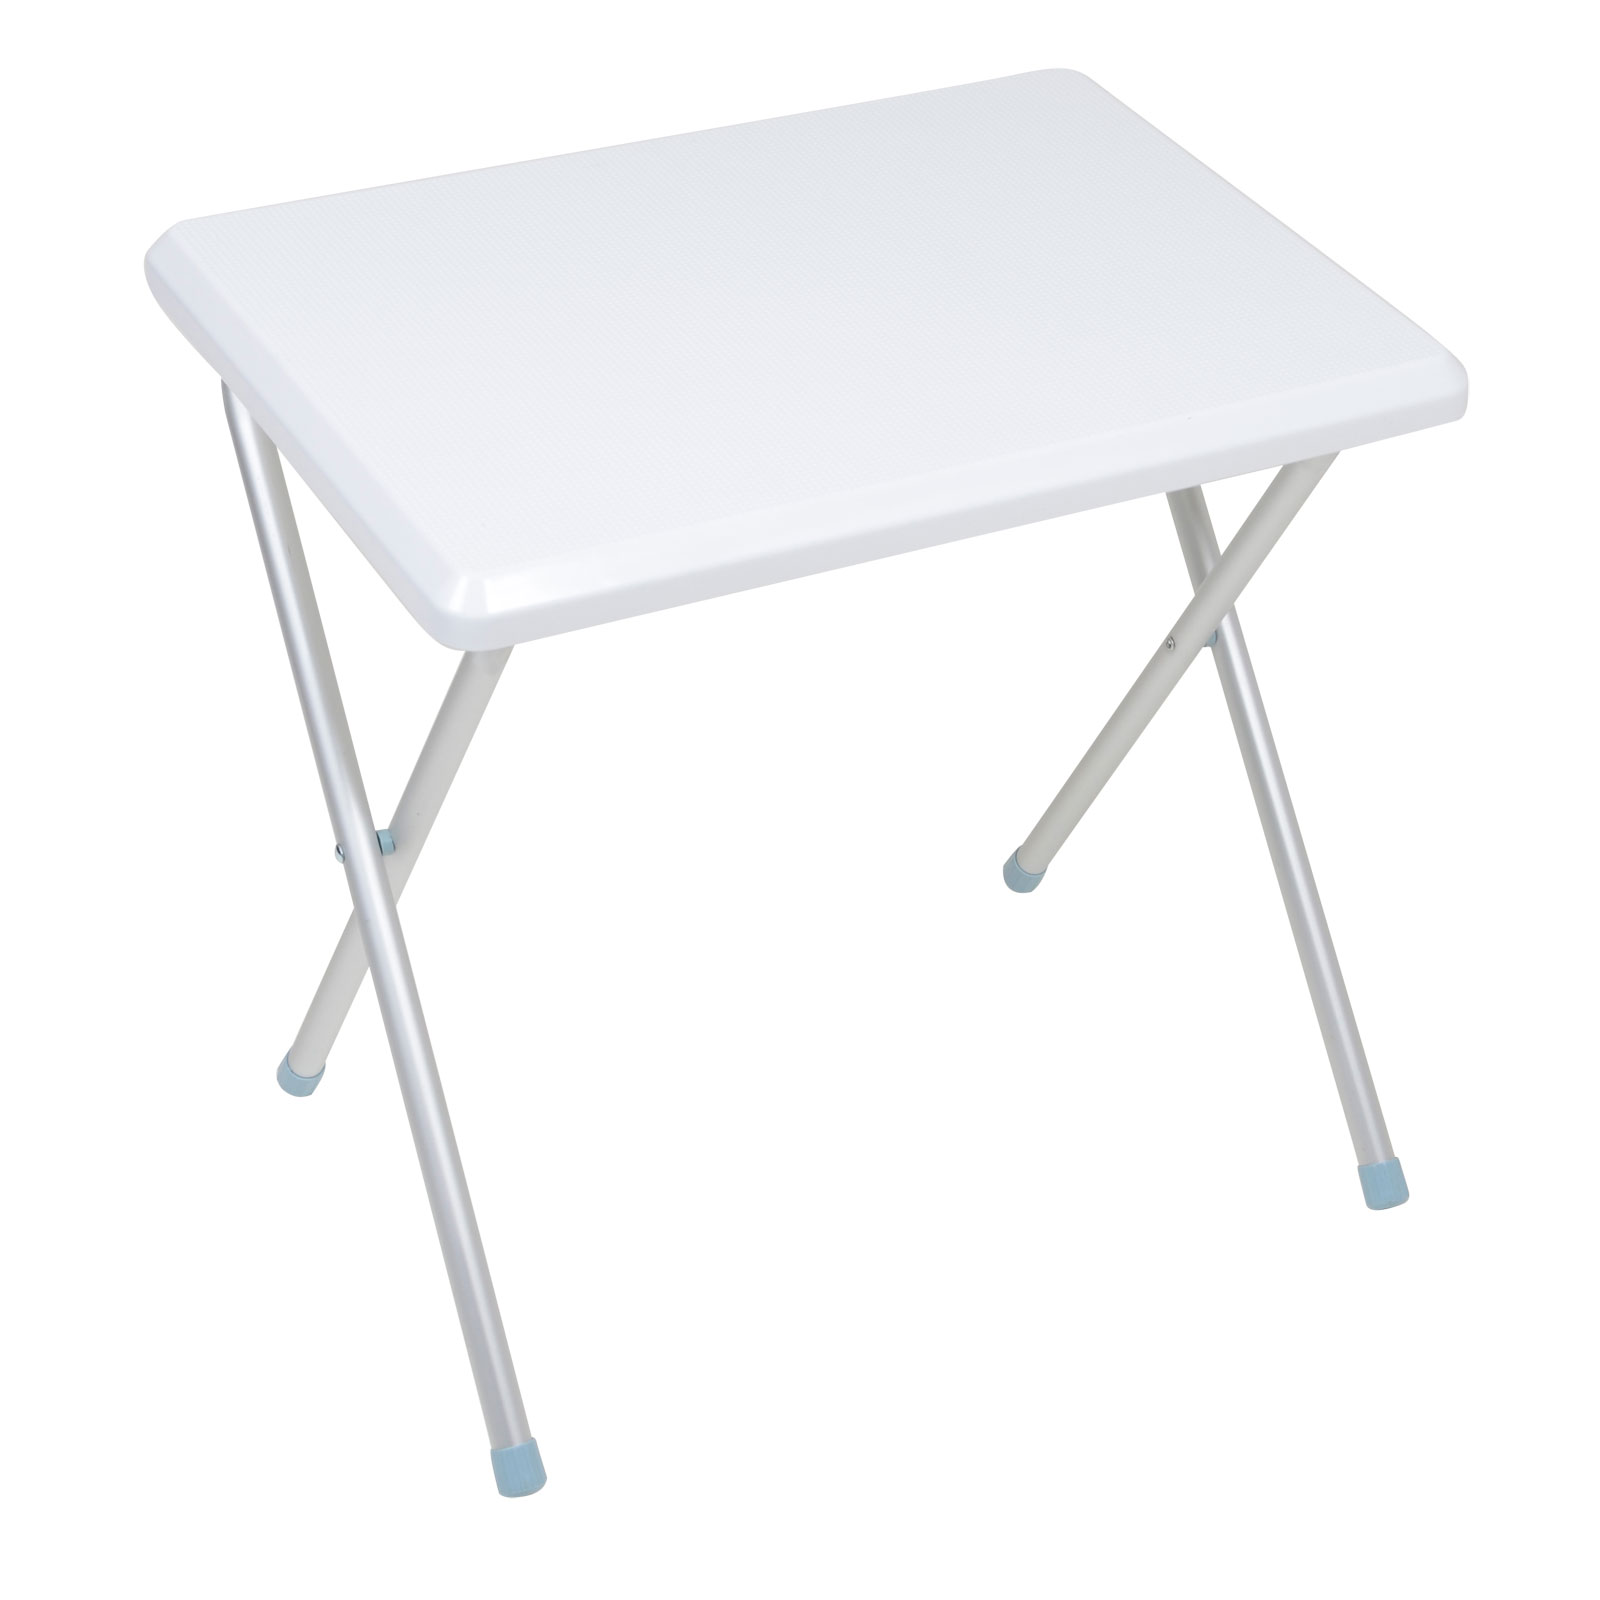 Small Plastic Folding Table